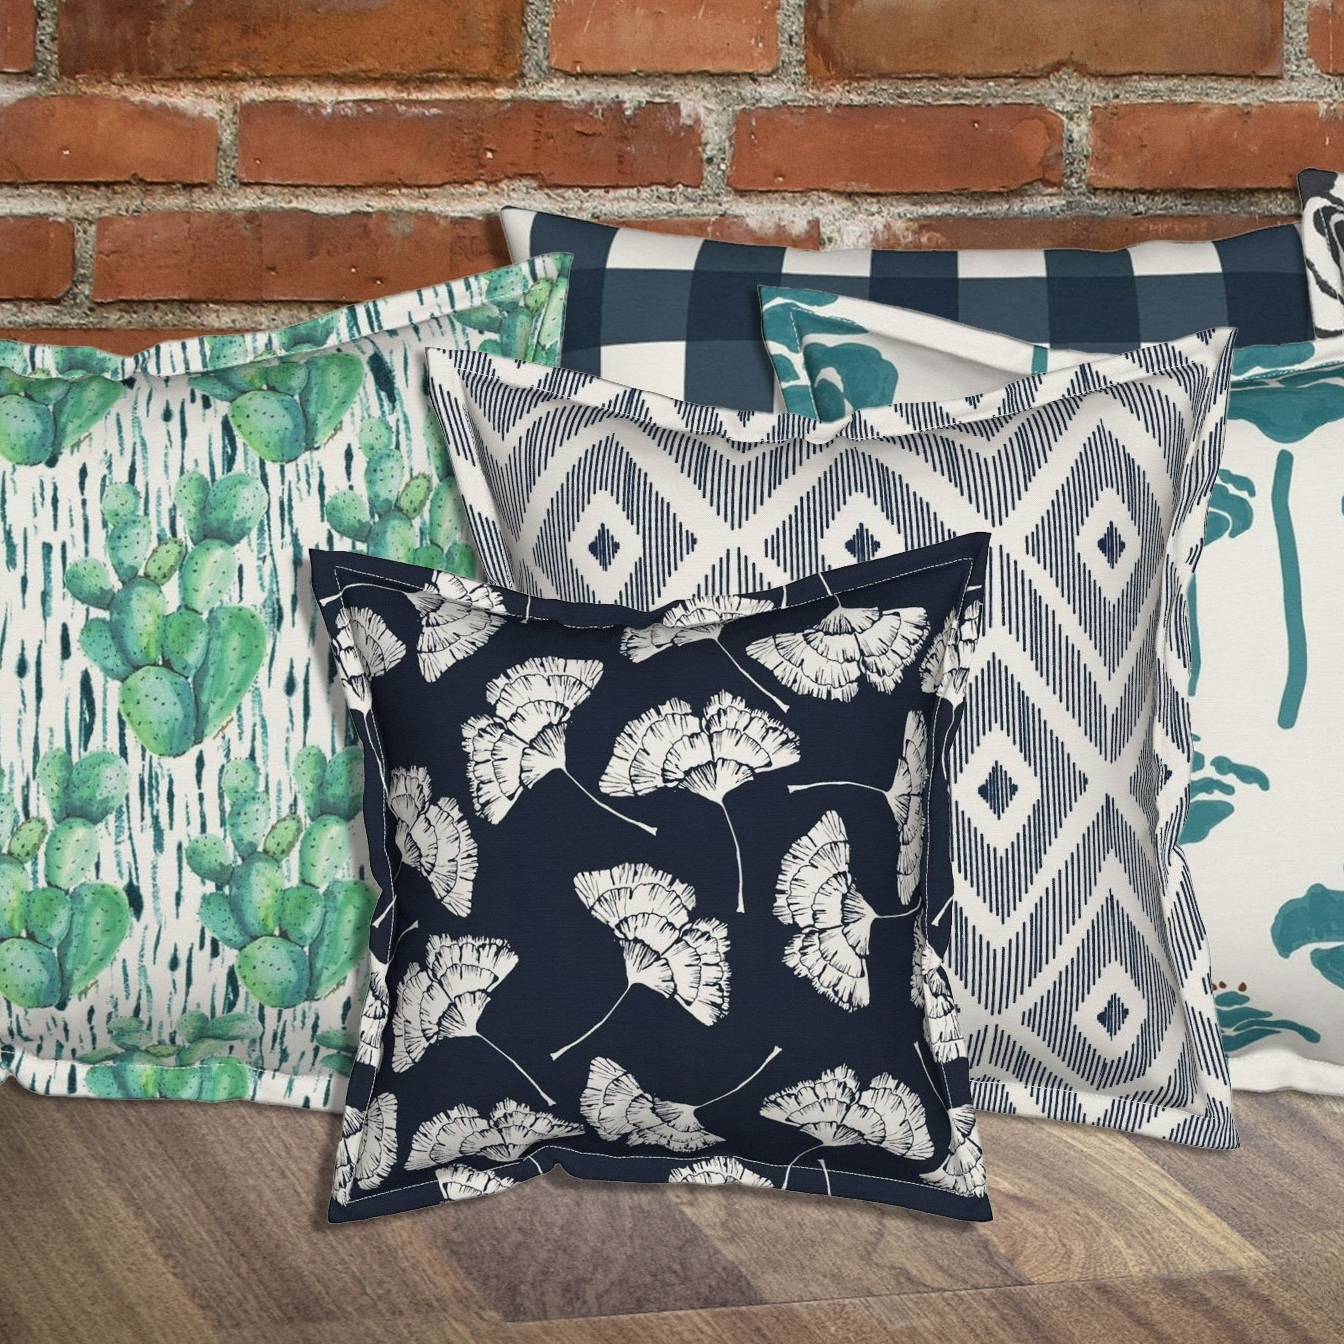 Throw Pillows   Starting at $35   (more options available)